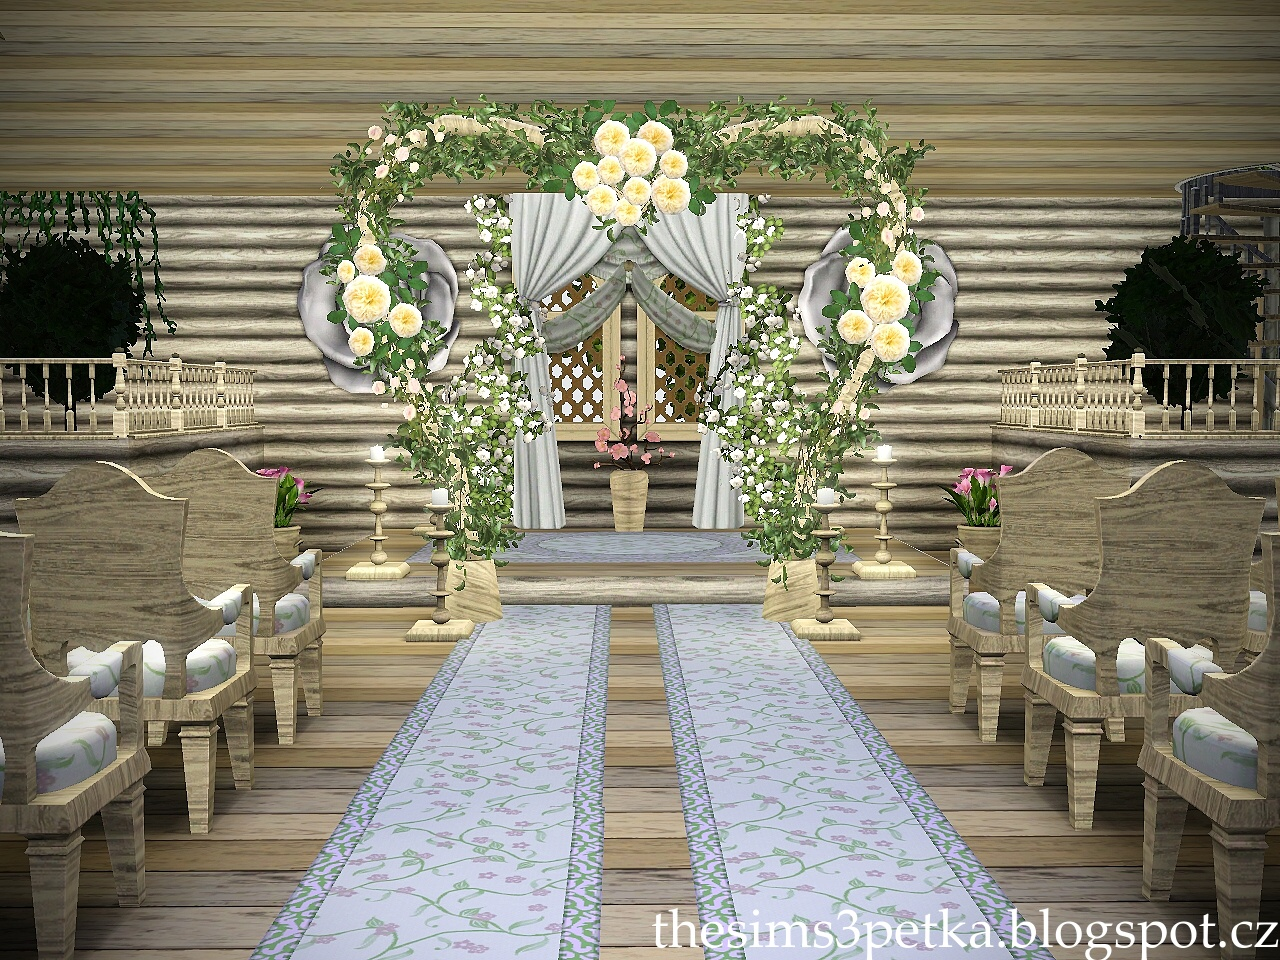 Sims 3 Updates Petka Sims3 Mariage De Reva Church Wedding By Petka